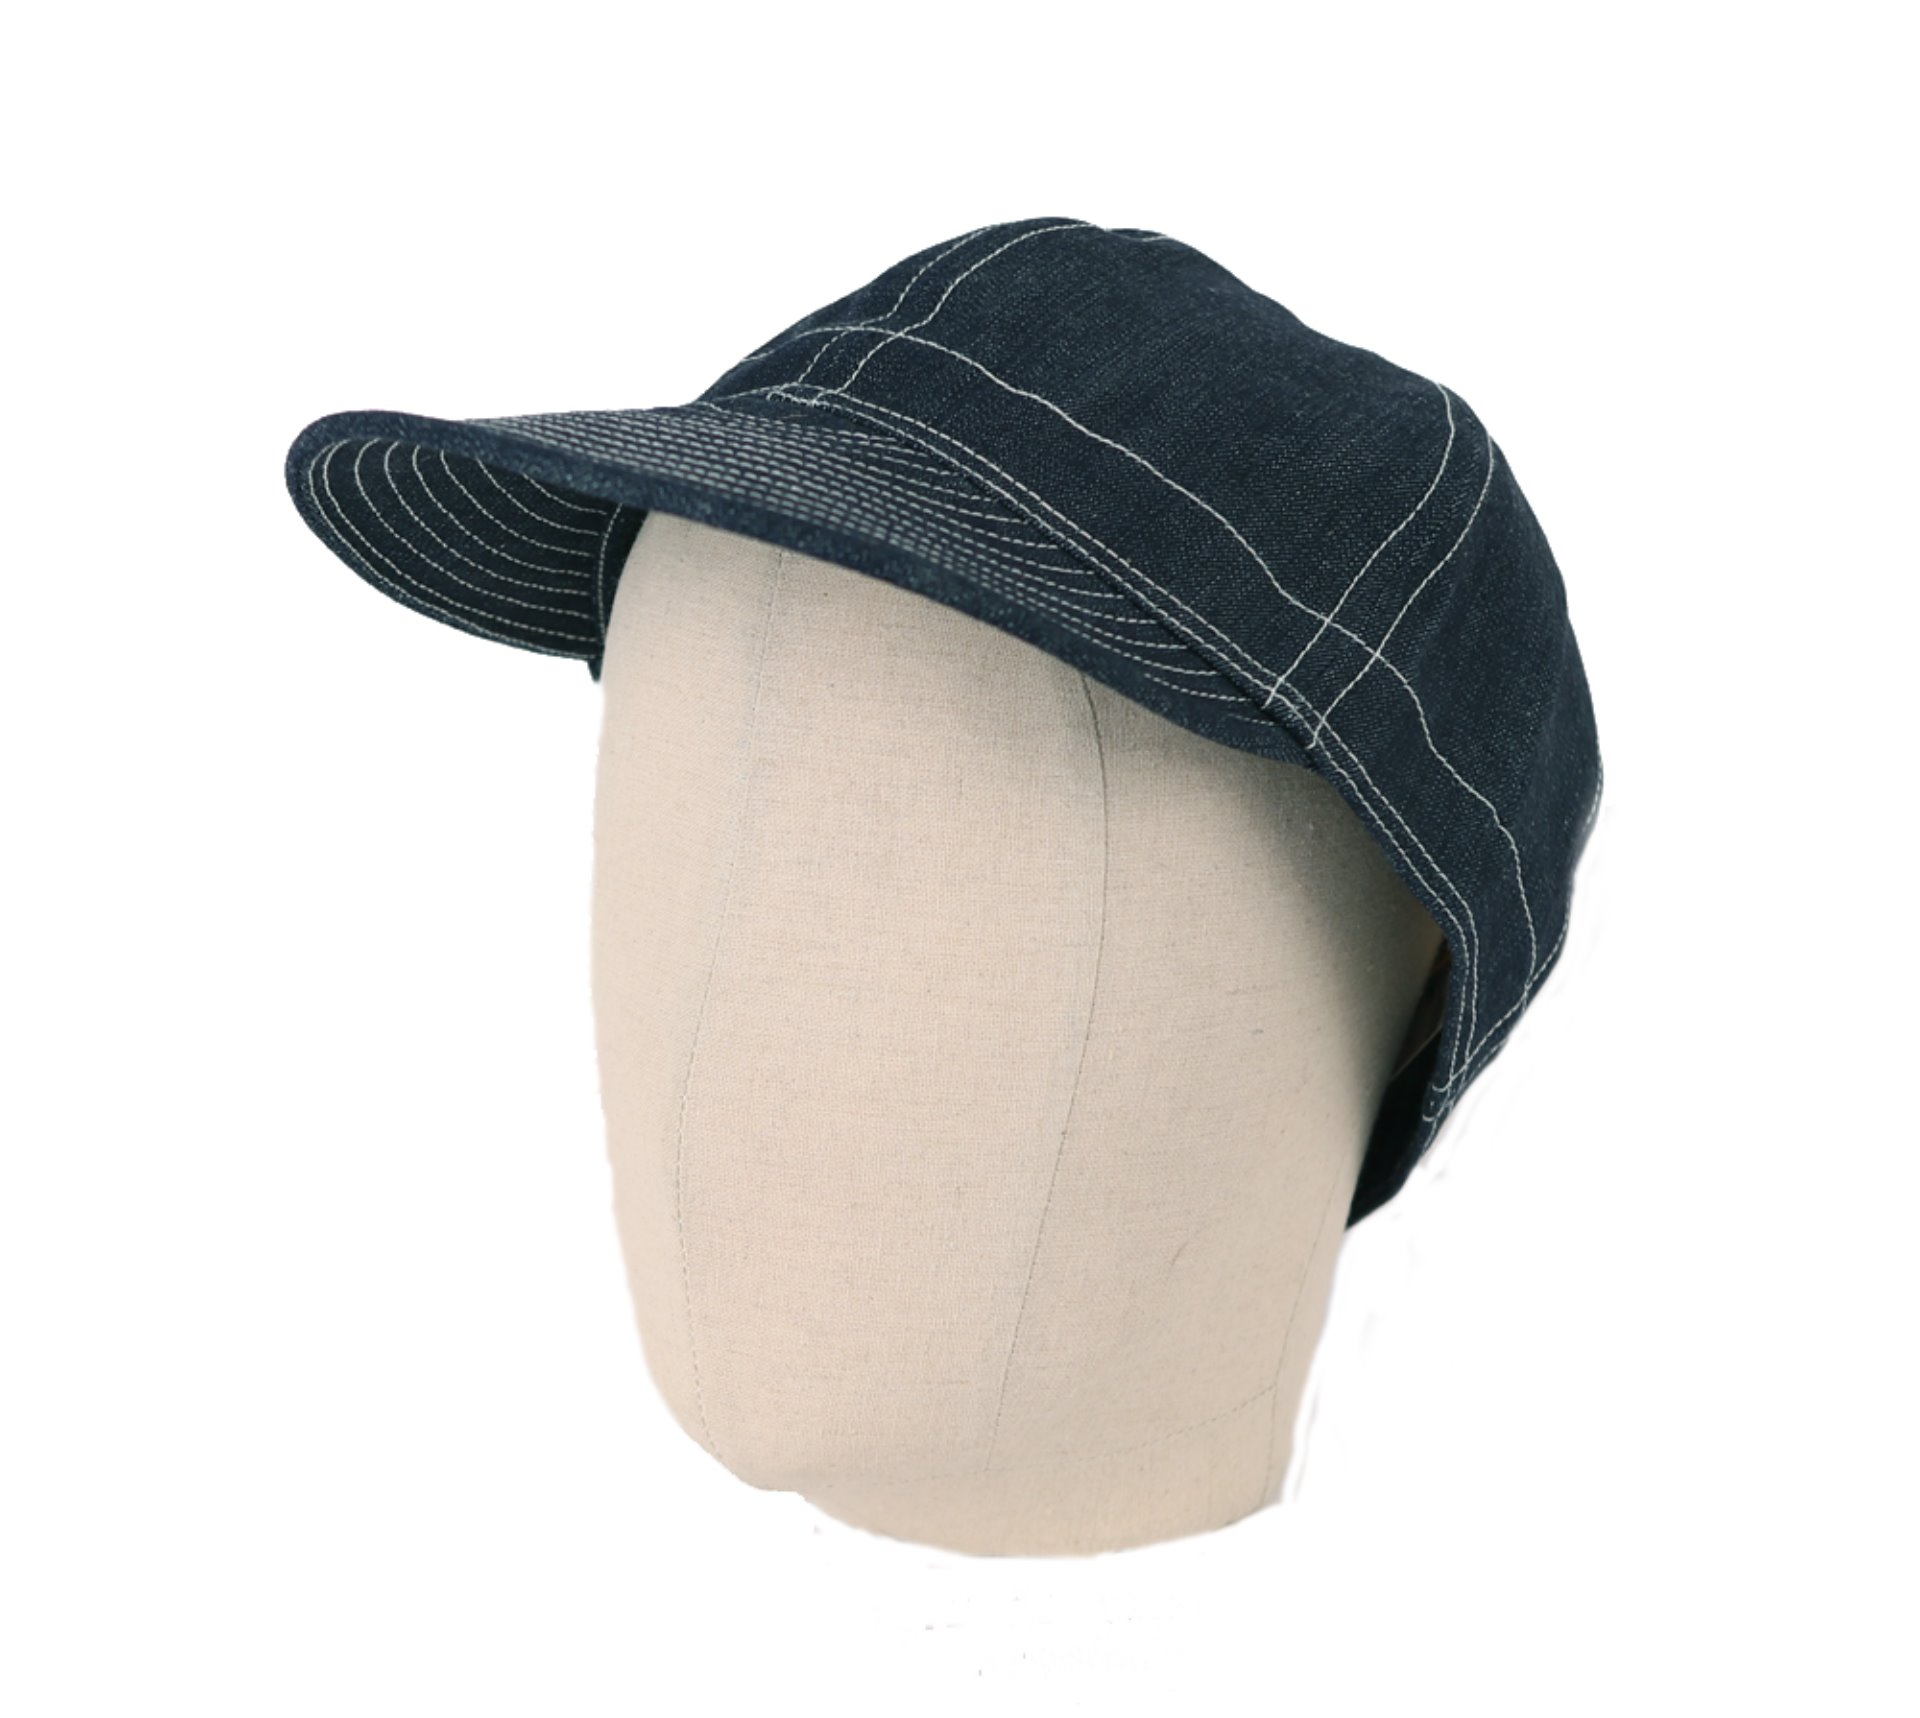 [Union Special Overalls]Civilan Military StyleMechanic Cap(10oz Indigo Denim)